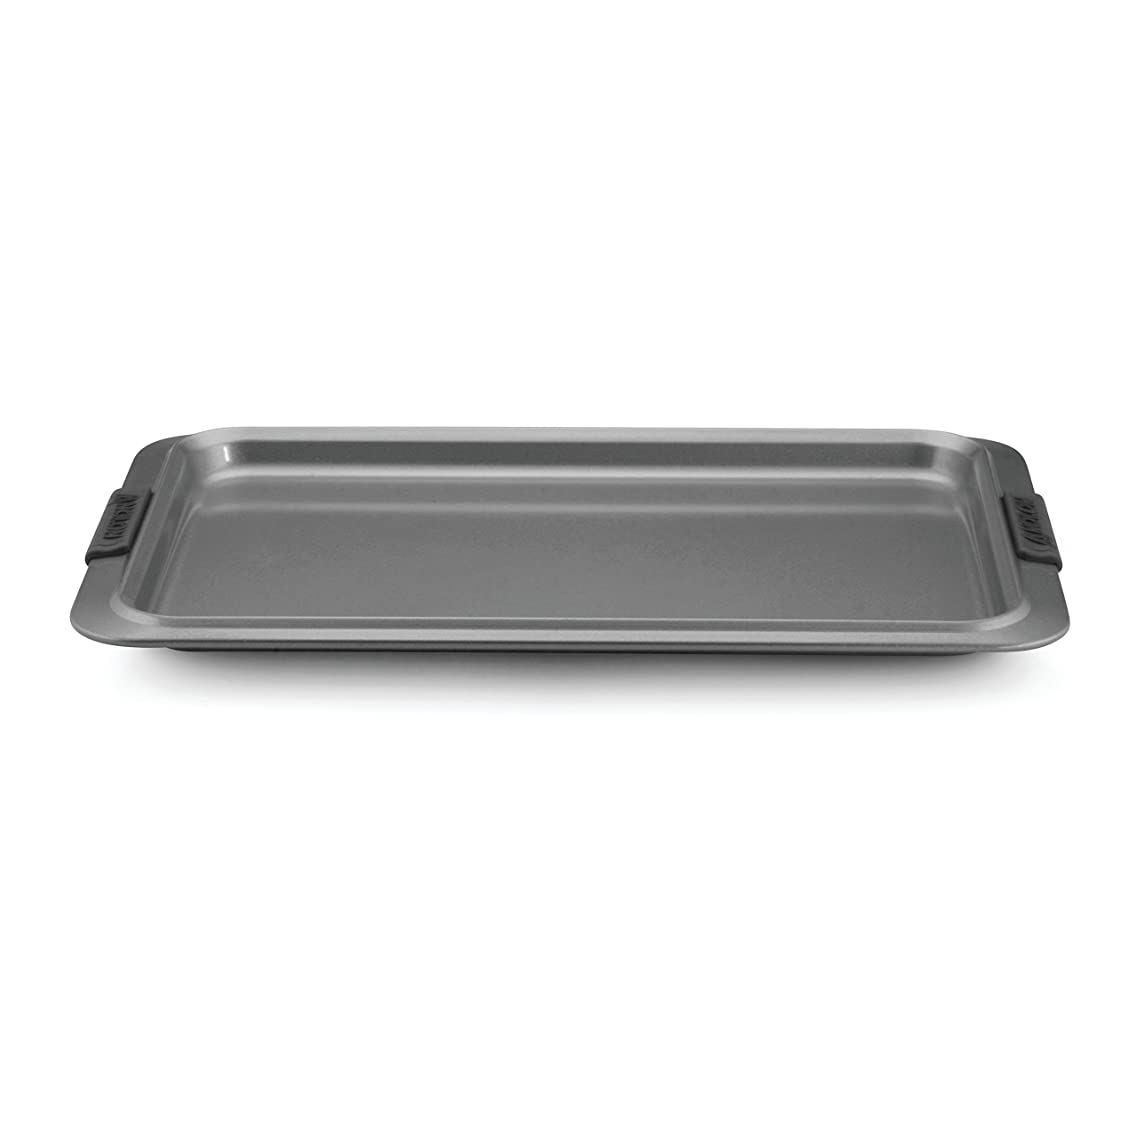 Anolon Advanced Nonstick Bakeware 11-Inch x 17-Inch Cookie Sheet, Gray with Silicone Grips